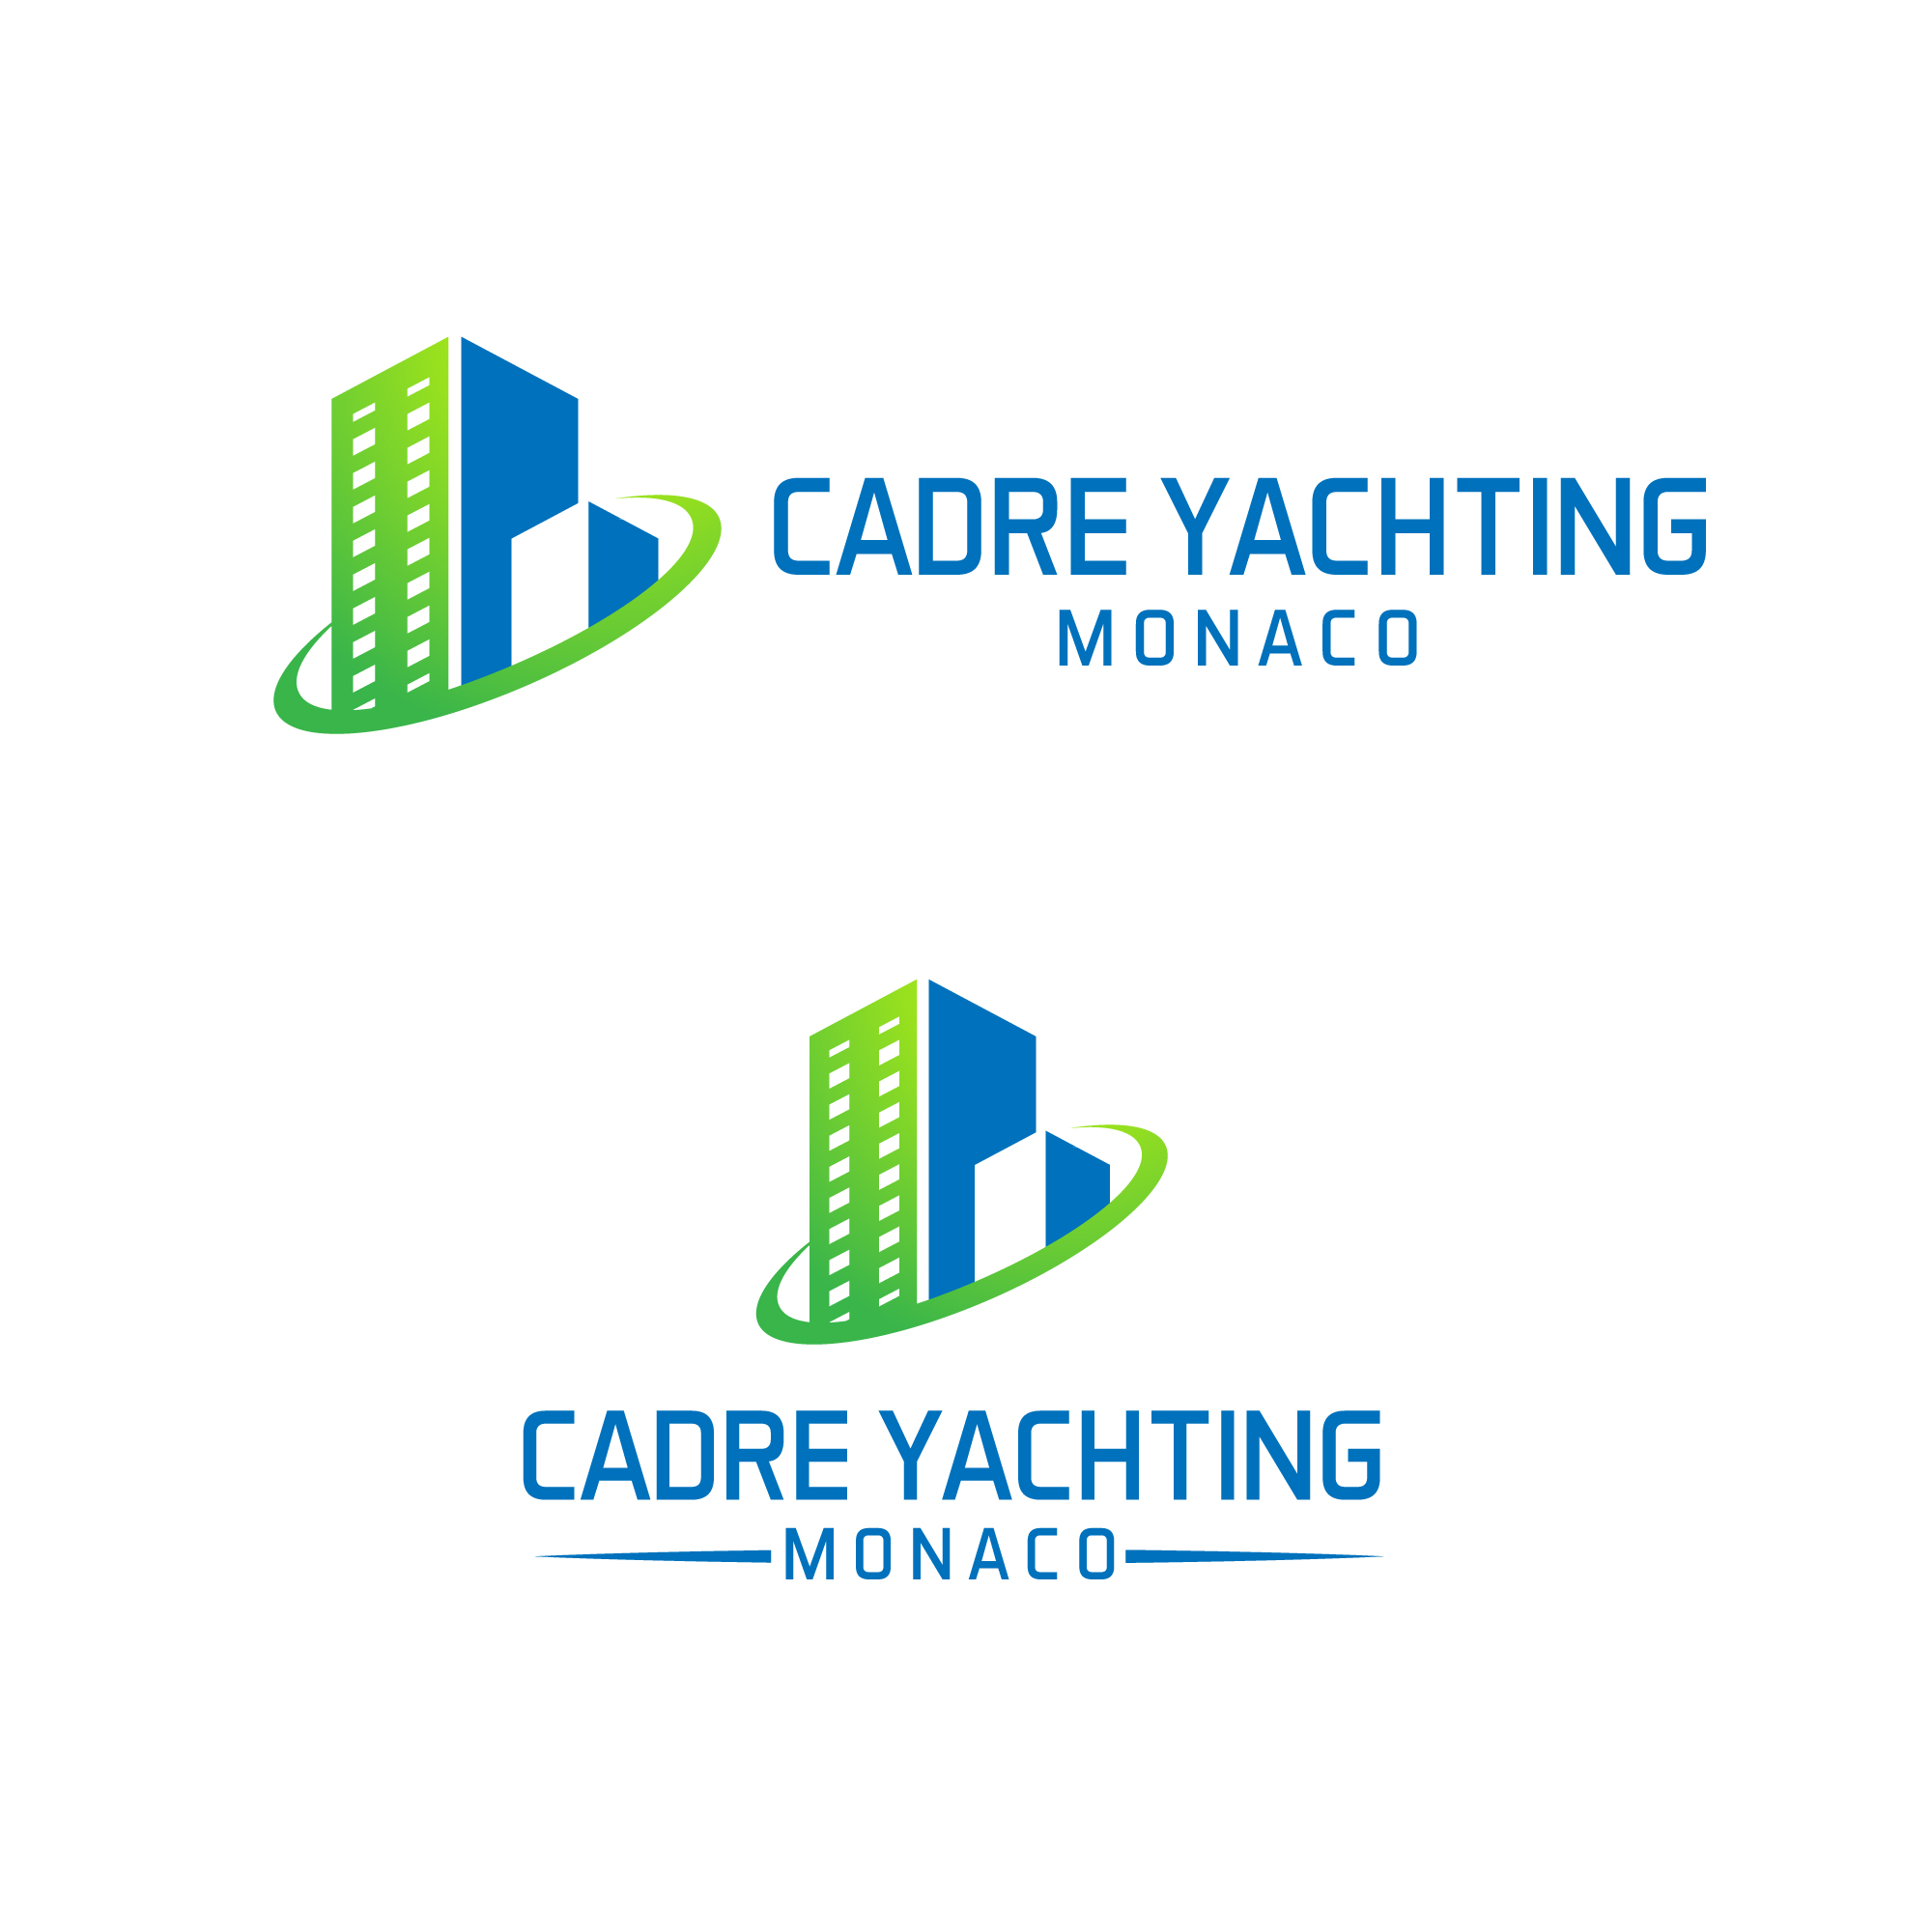 Logo Design by Gouranga Deuri - Entry No. 359 in the Logo Design Contest New Logo Design for Cadre Yachting Monaco.